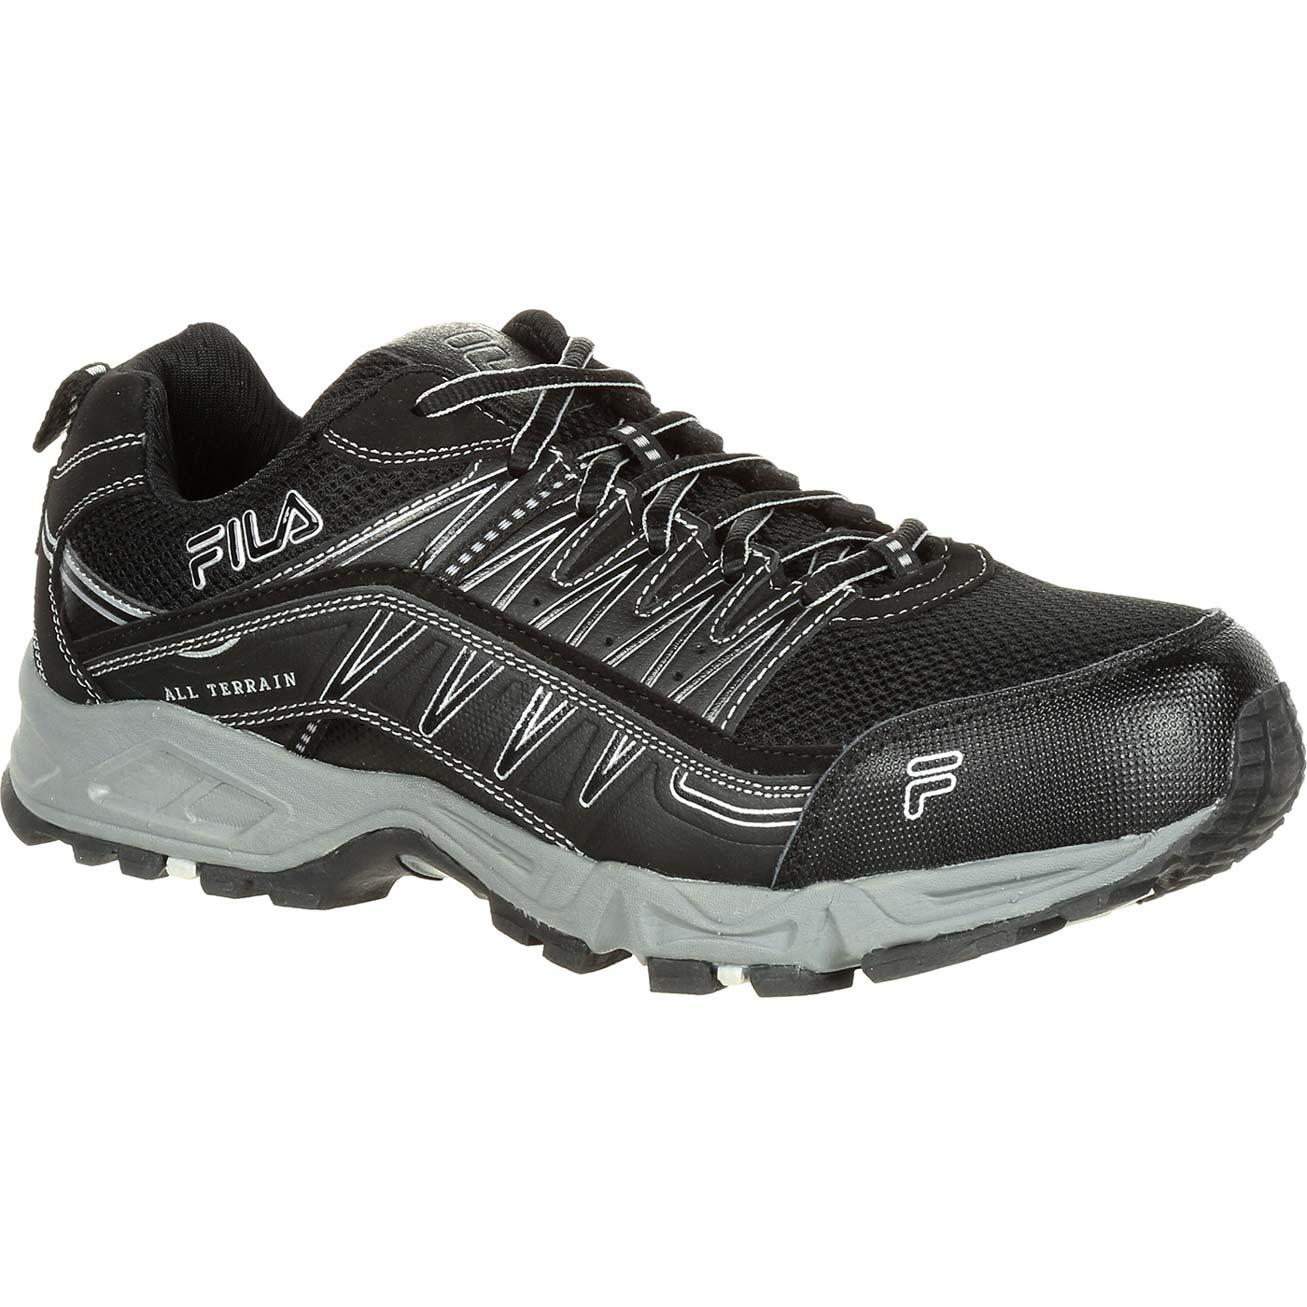 73bce0d765 Fila At Peak Steel Toe Work Athletic Shoe